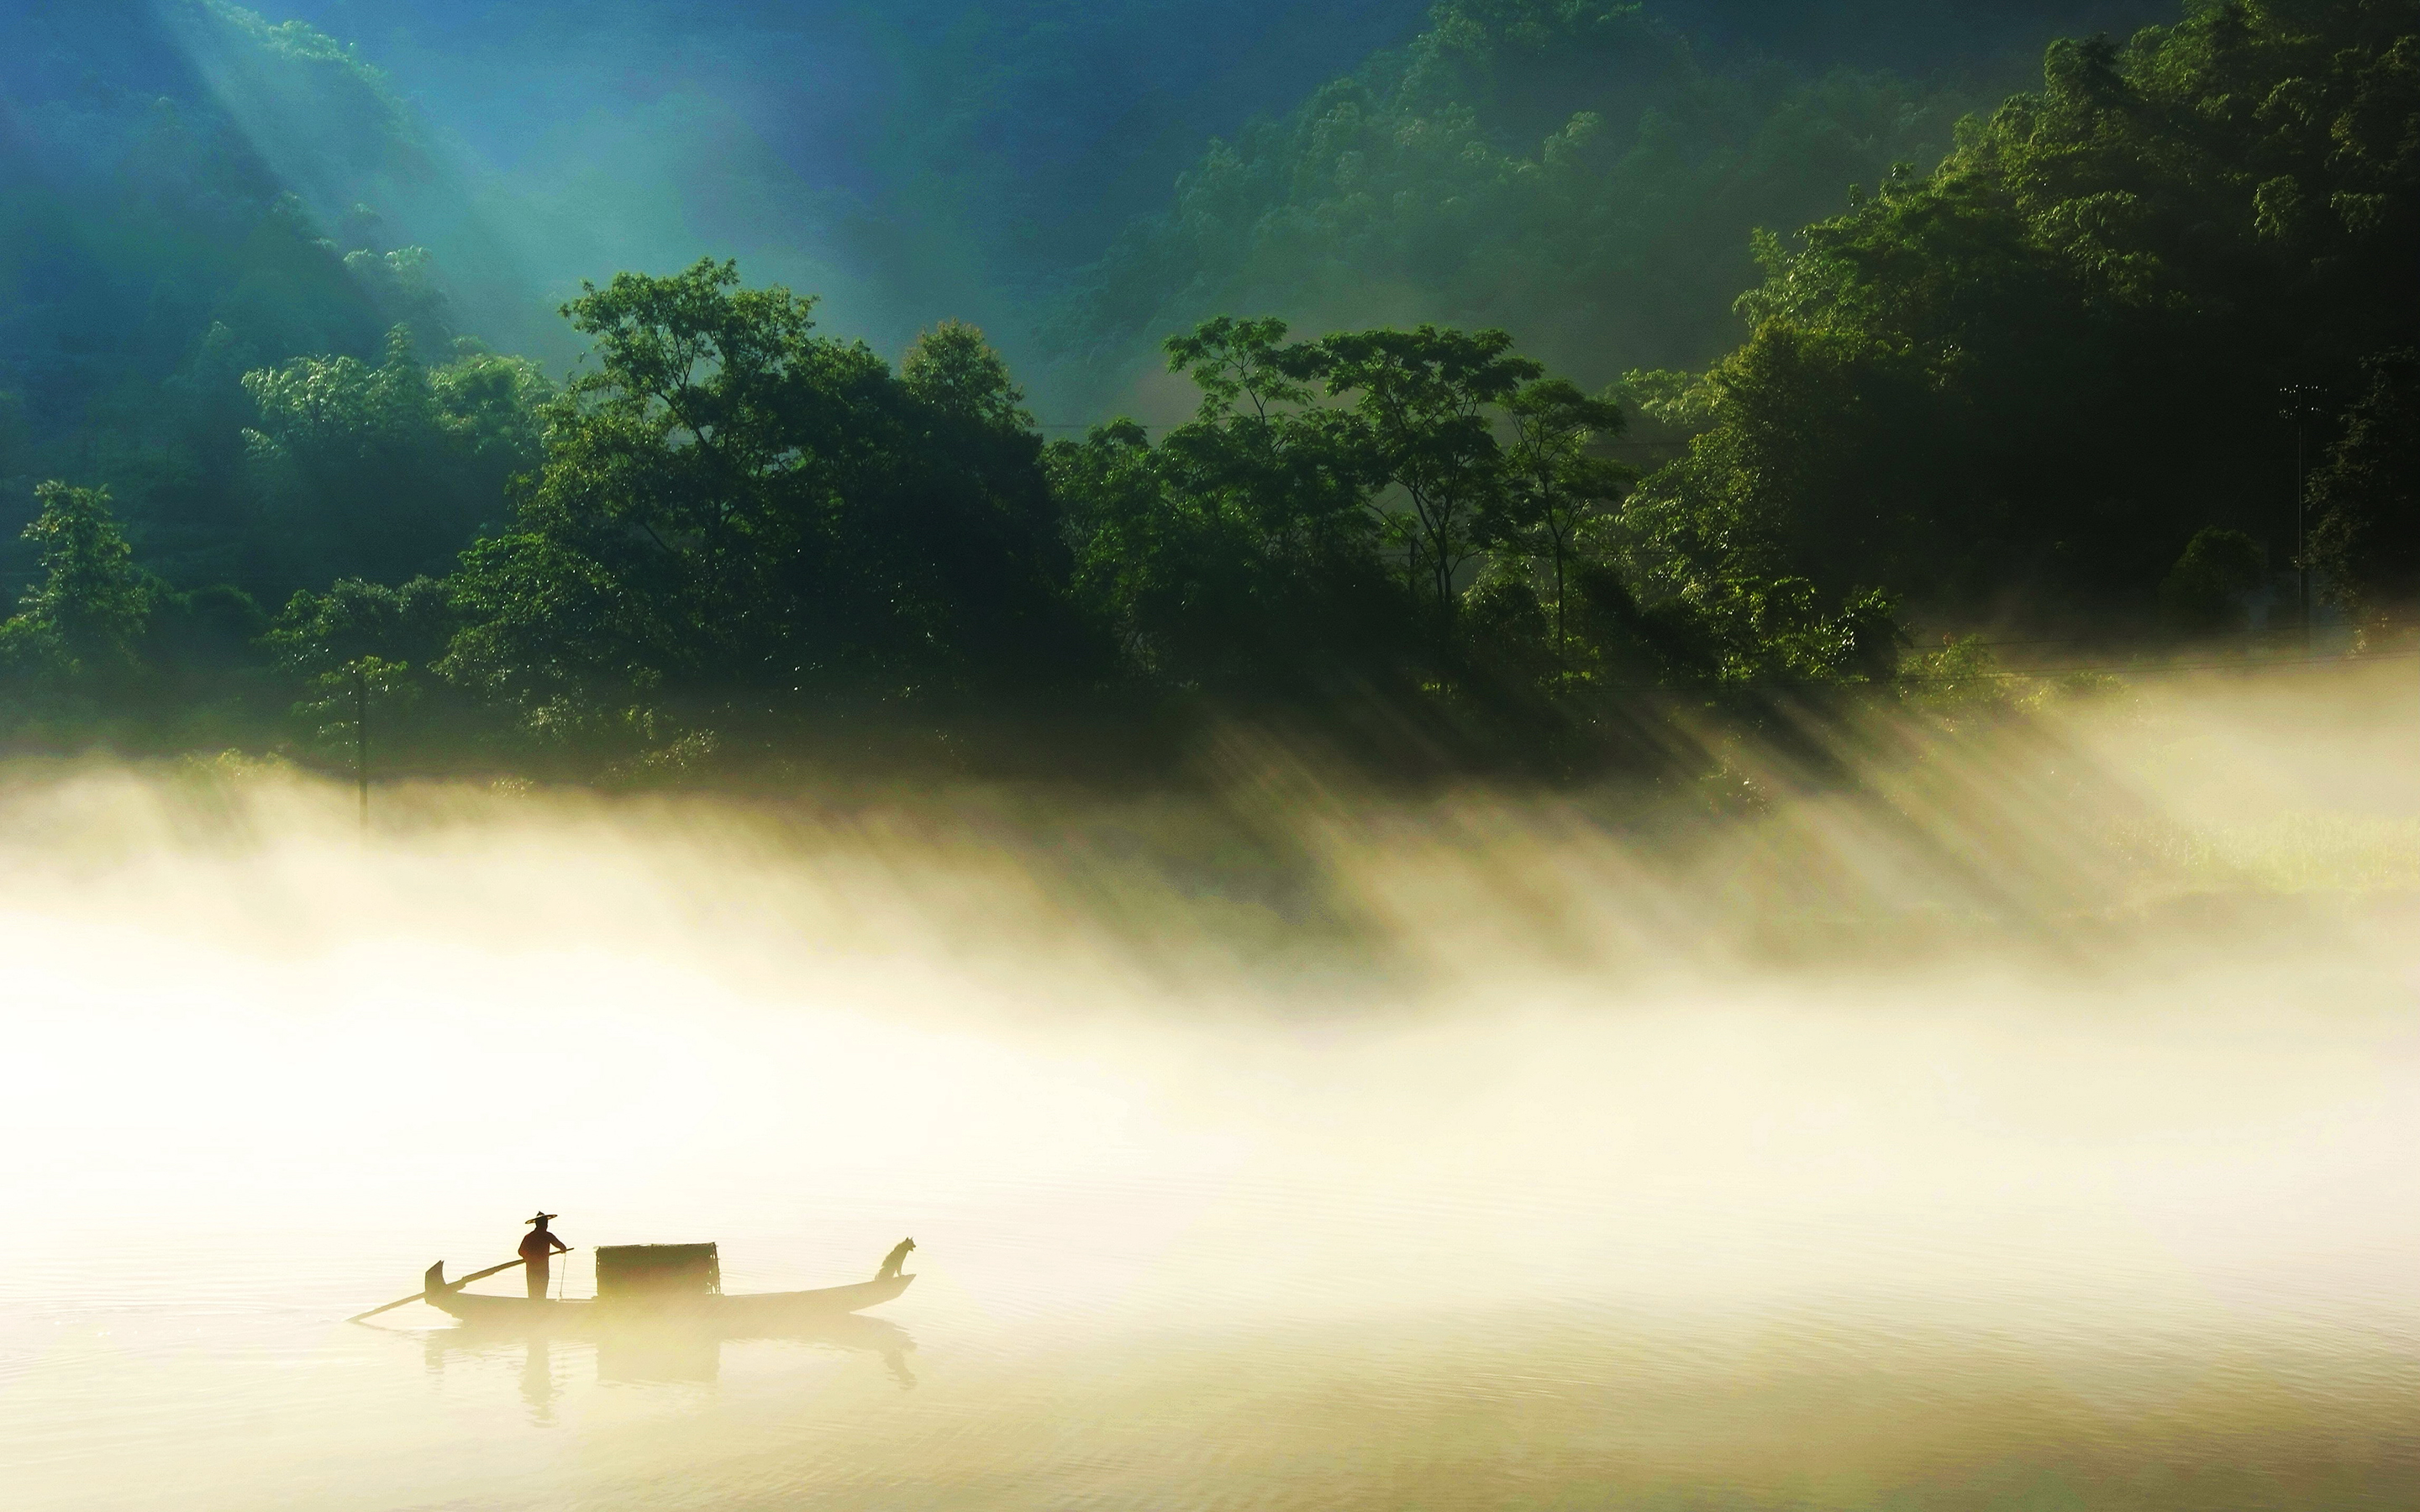 HD Wallpapers Countryside Fisherman